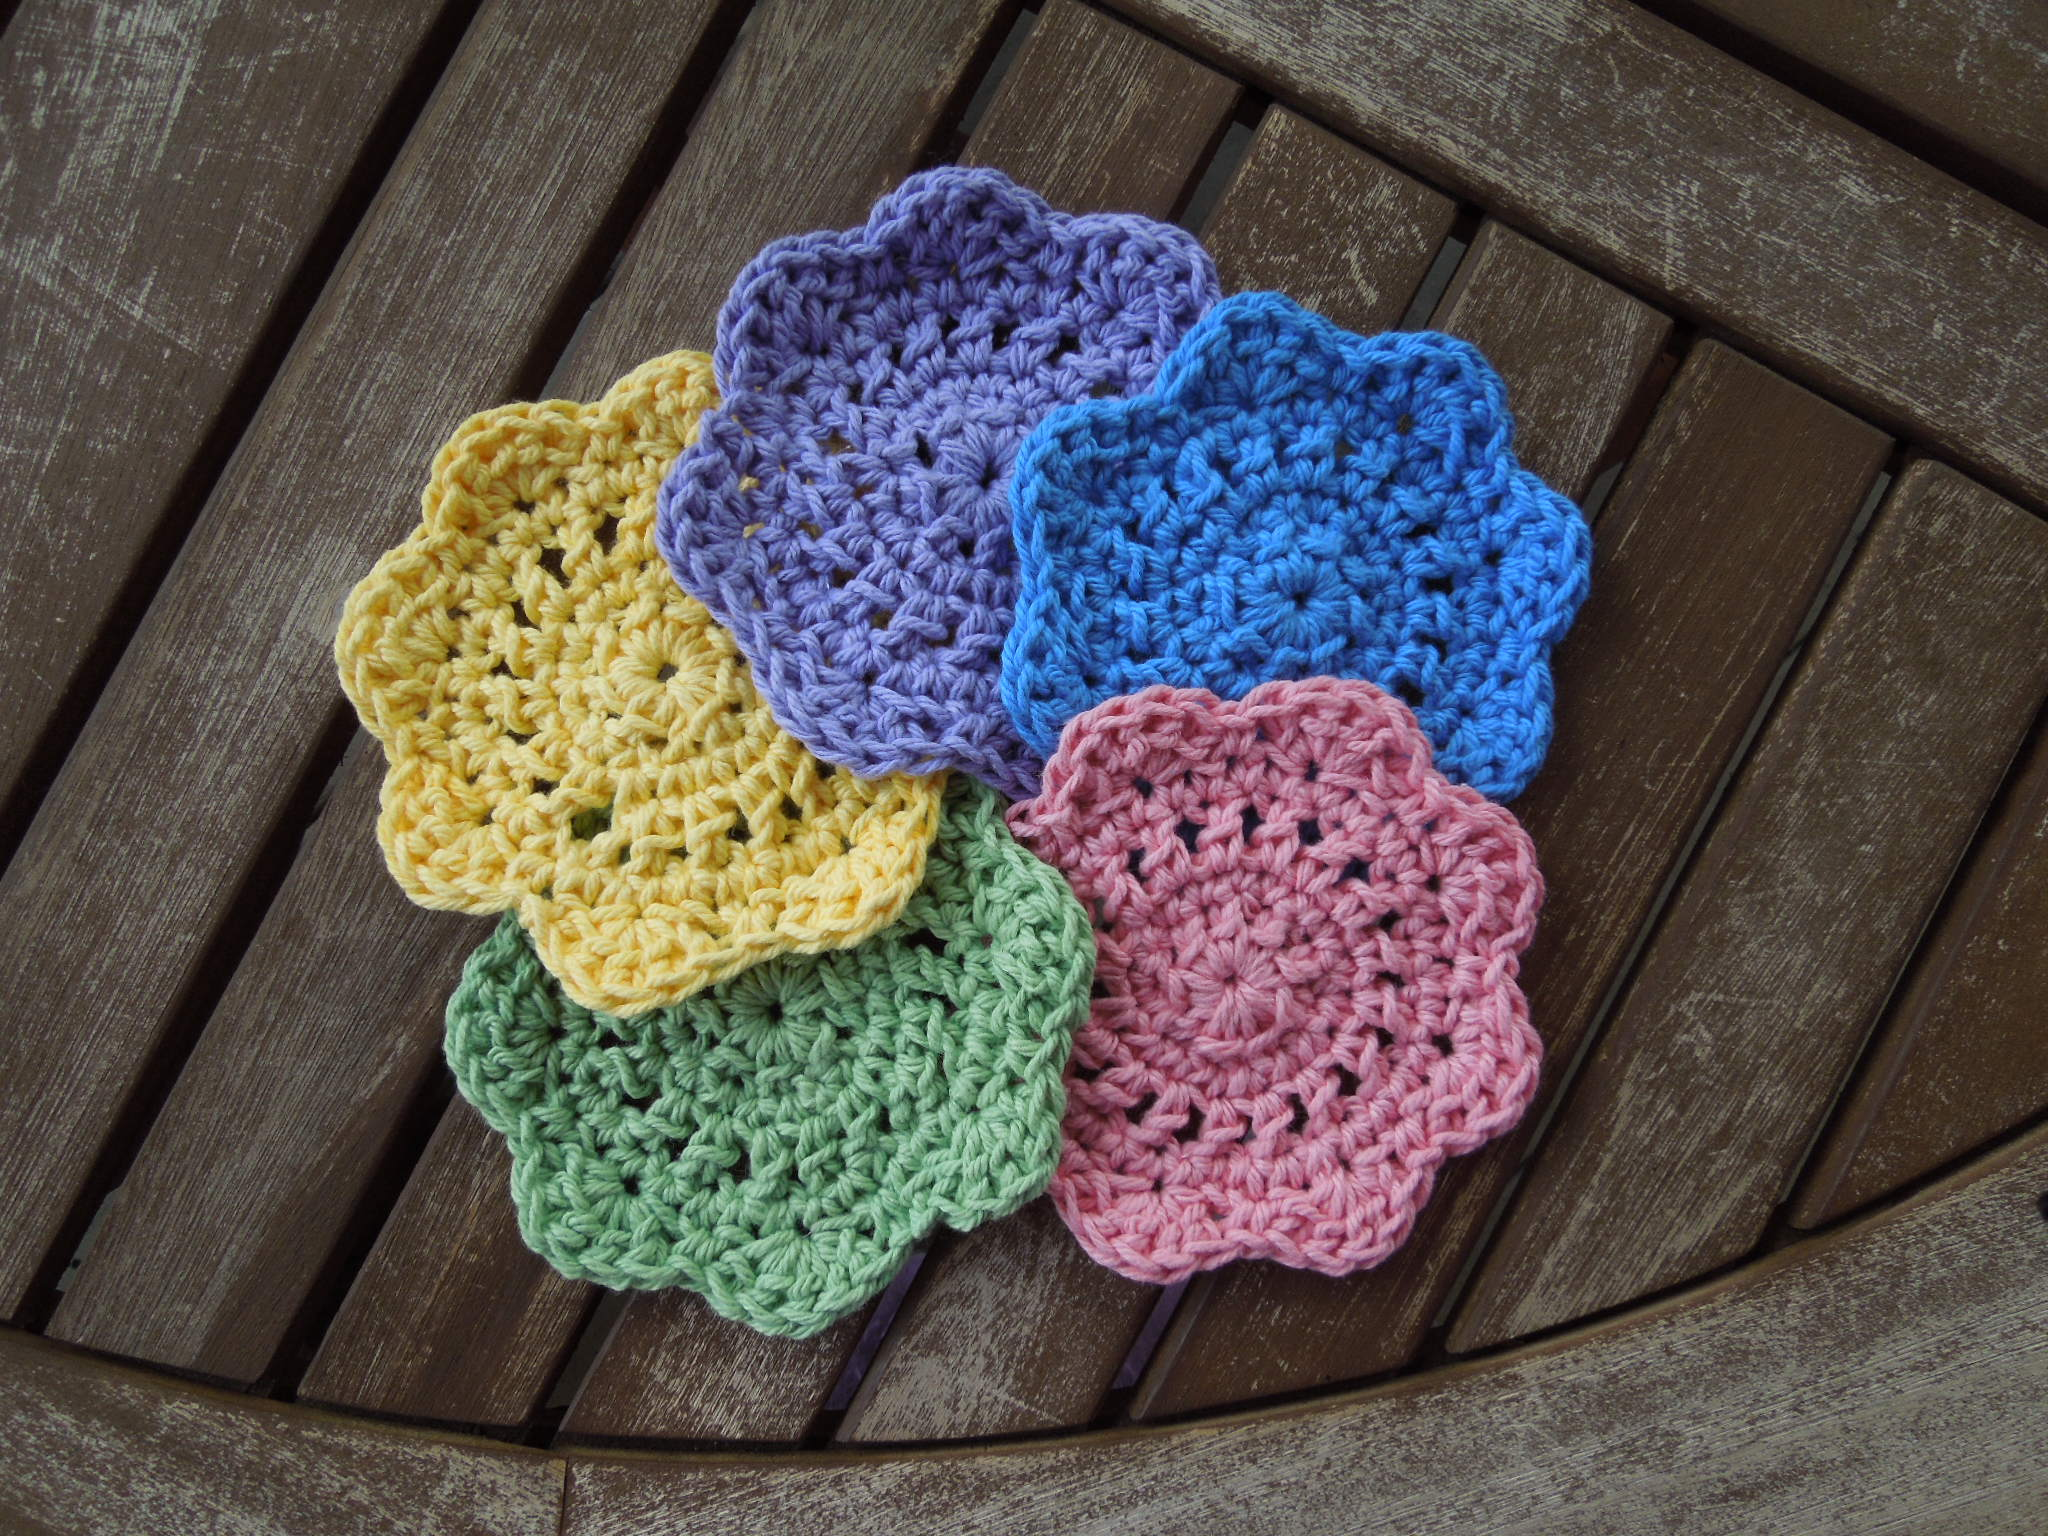 Free Crochet Pattern For Coaster : Quick & Easy Coasters Free Crochet Pattern